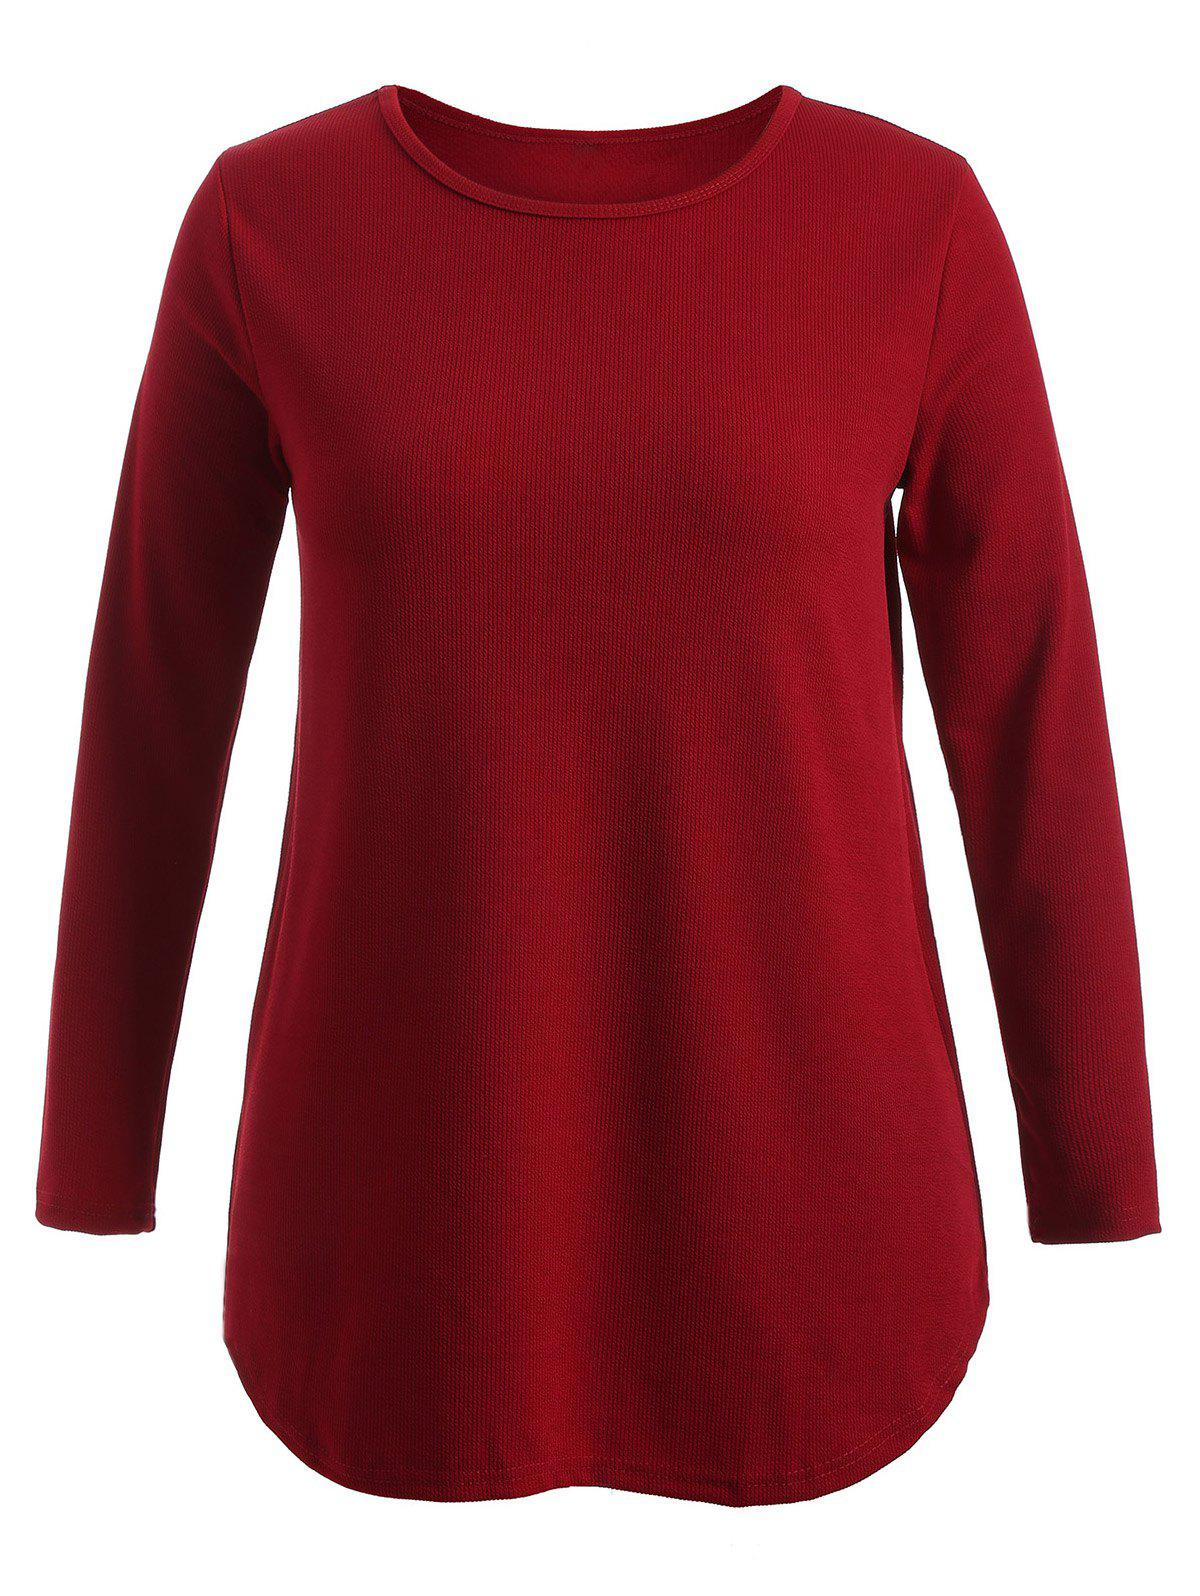 Shop Plus Size Knitwear with Arc Hem